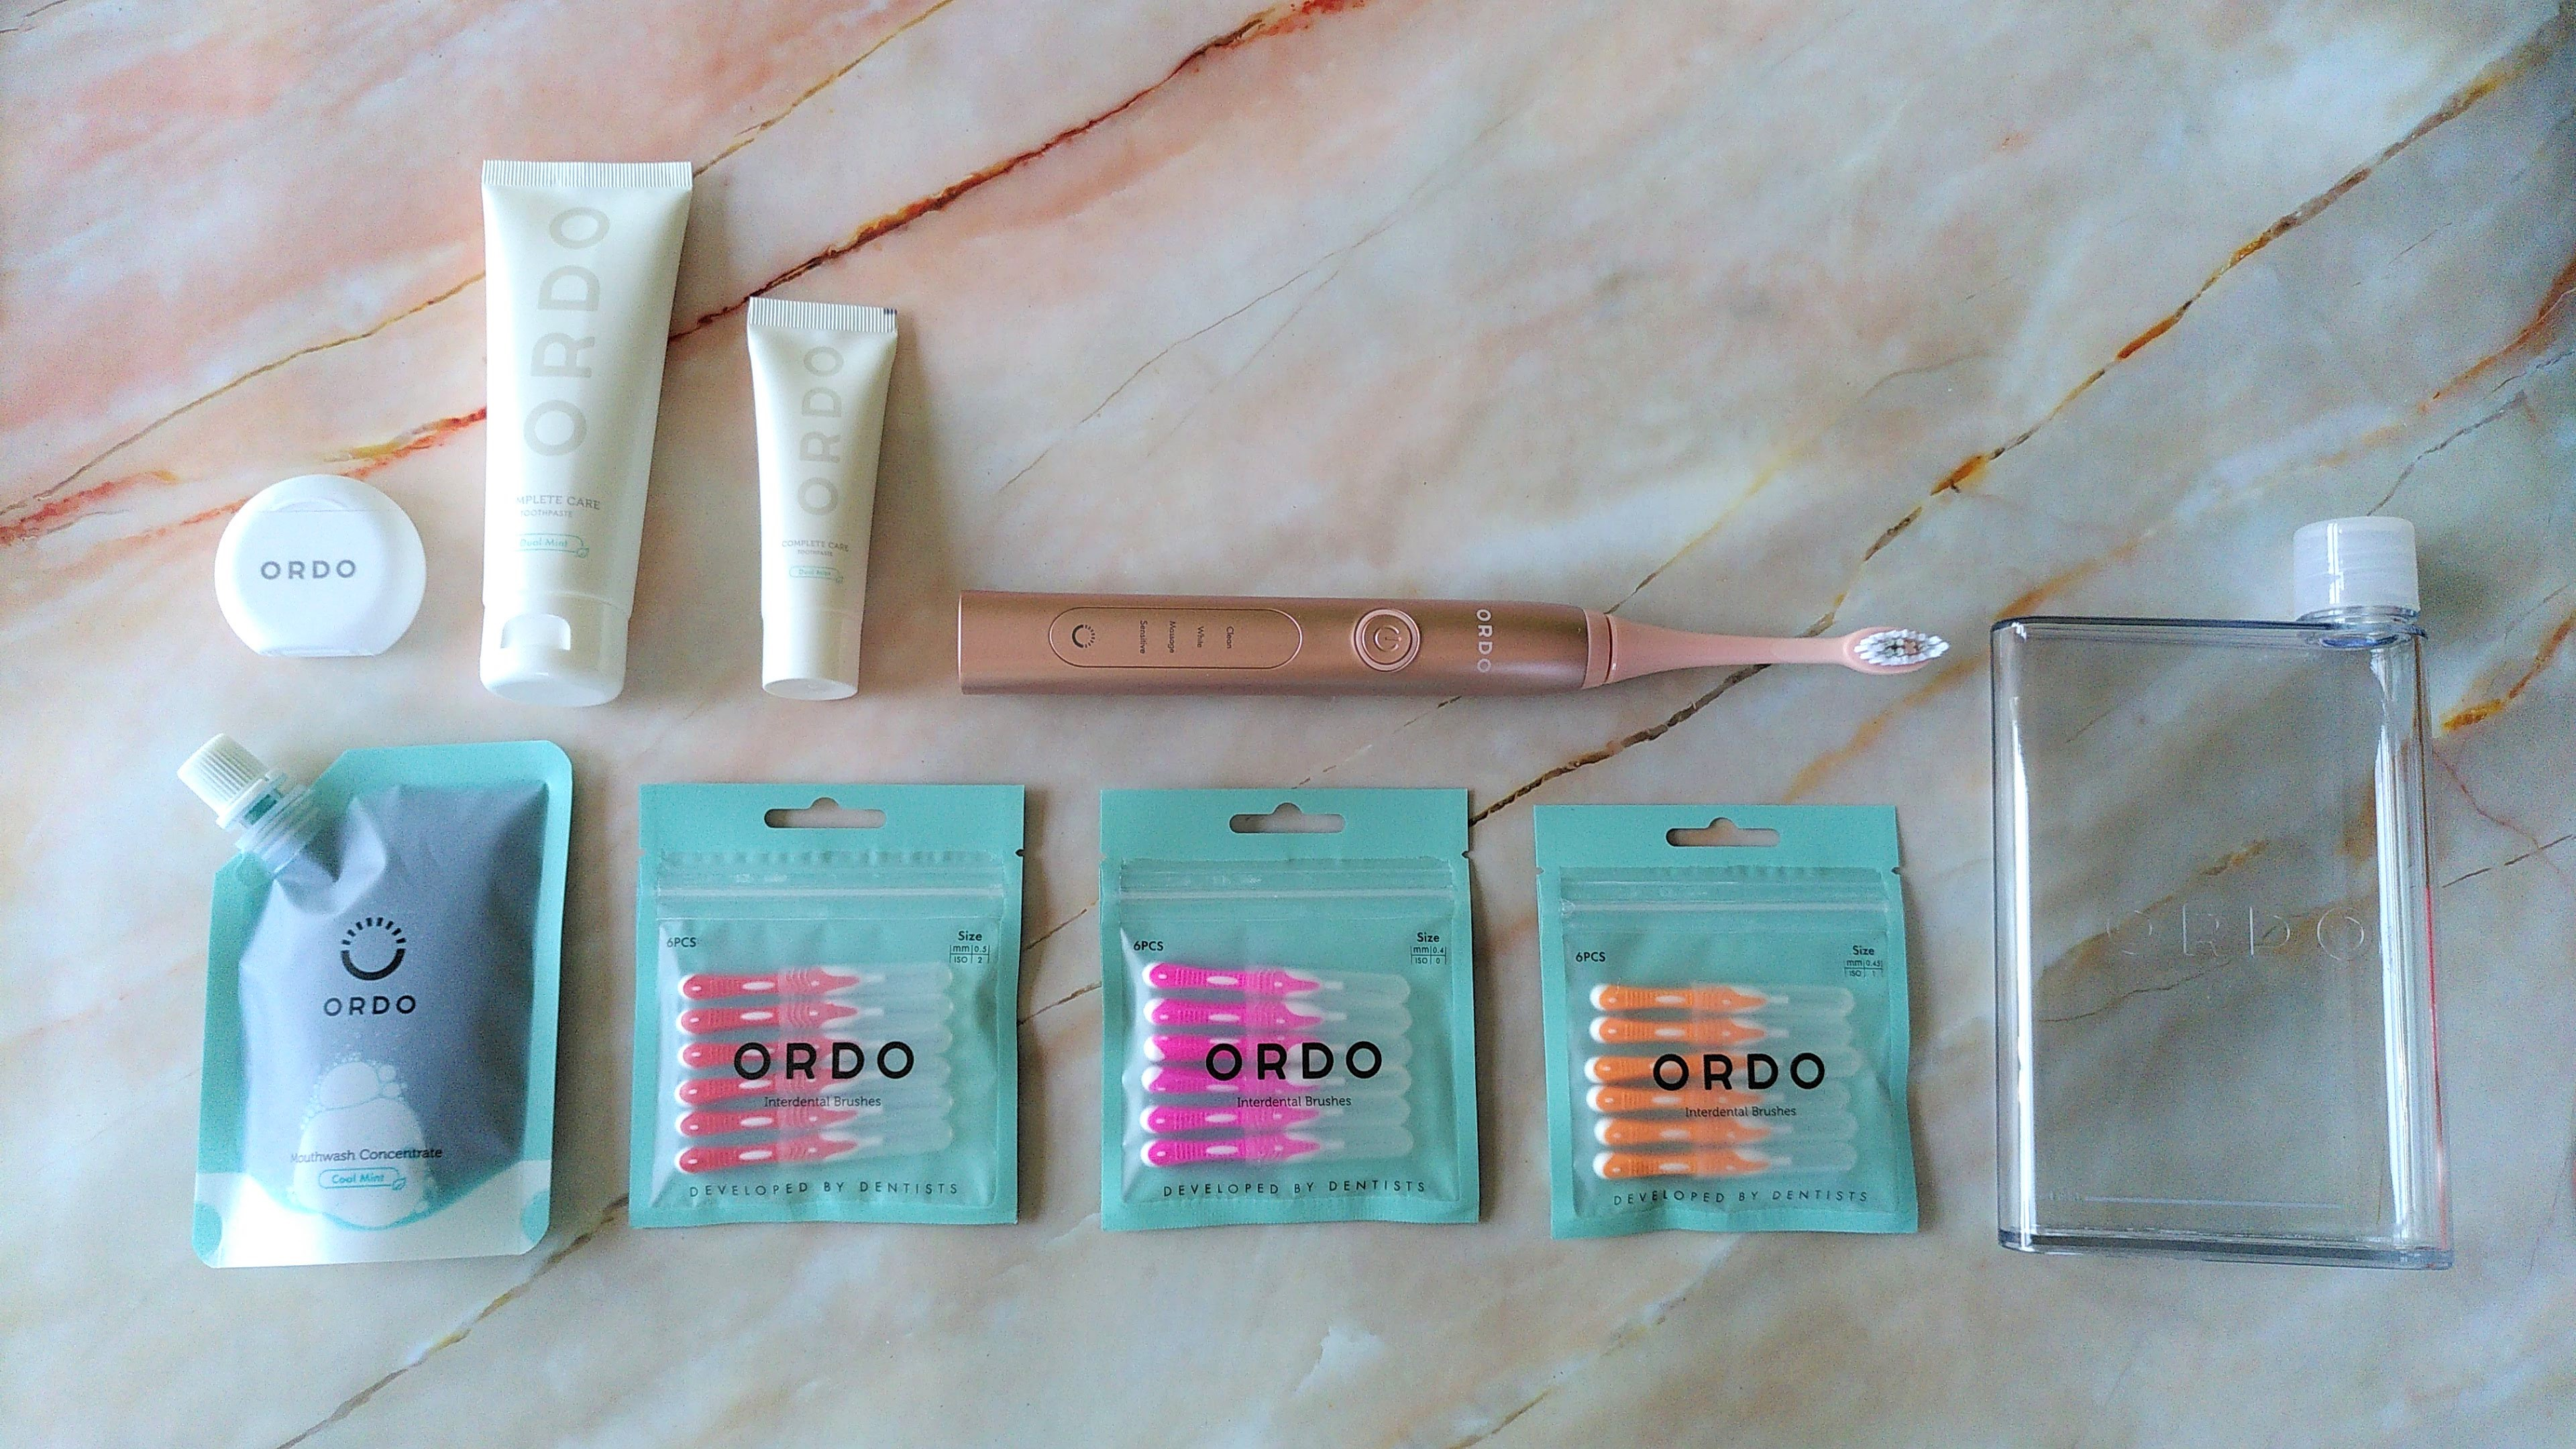 Ordo Sonic+ electric toothbrush with mouthwash concentrate, interdental brushes, floss, toothpaste, and reusable mouthwash bottle